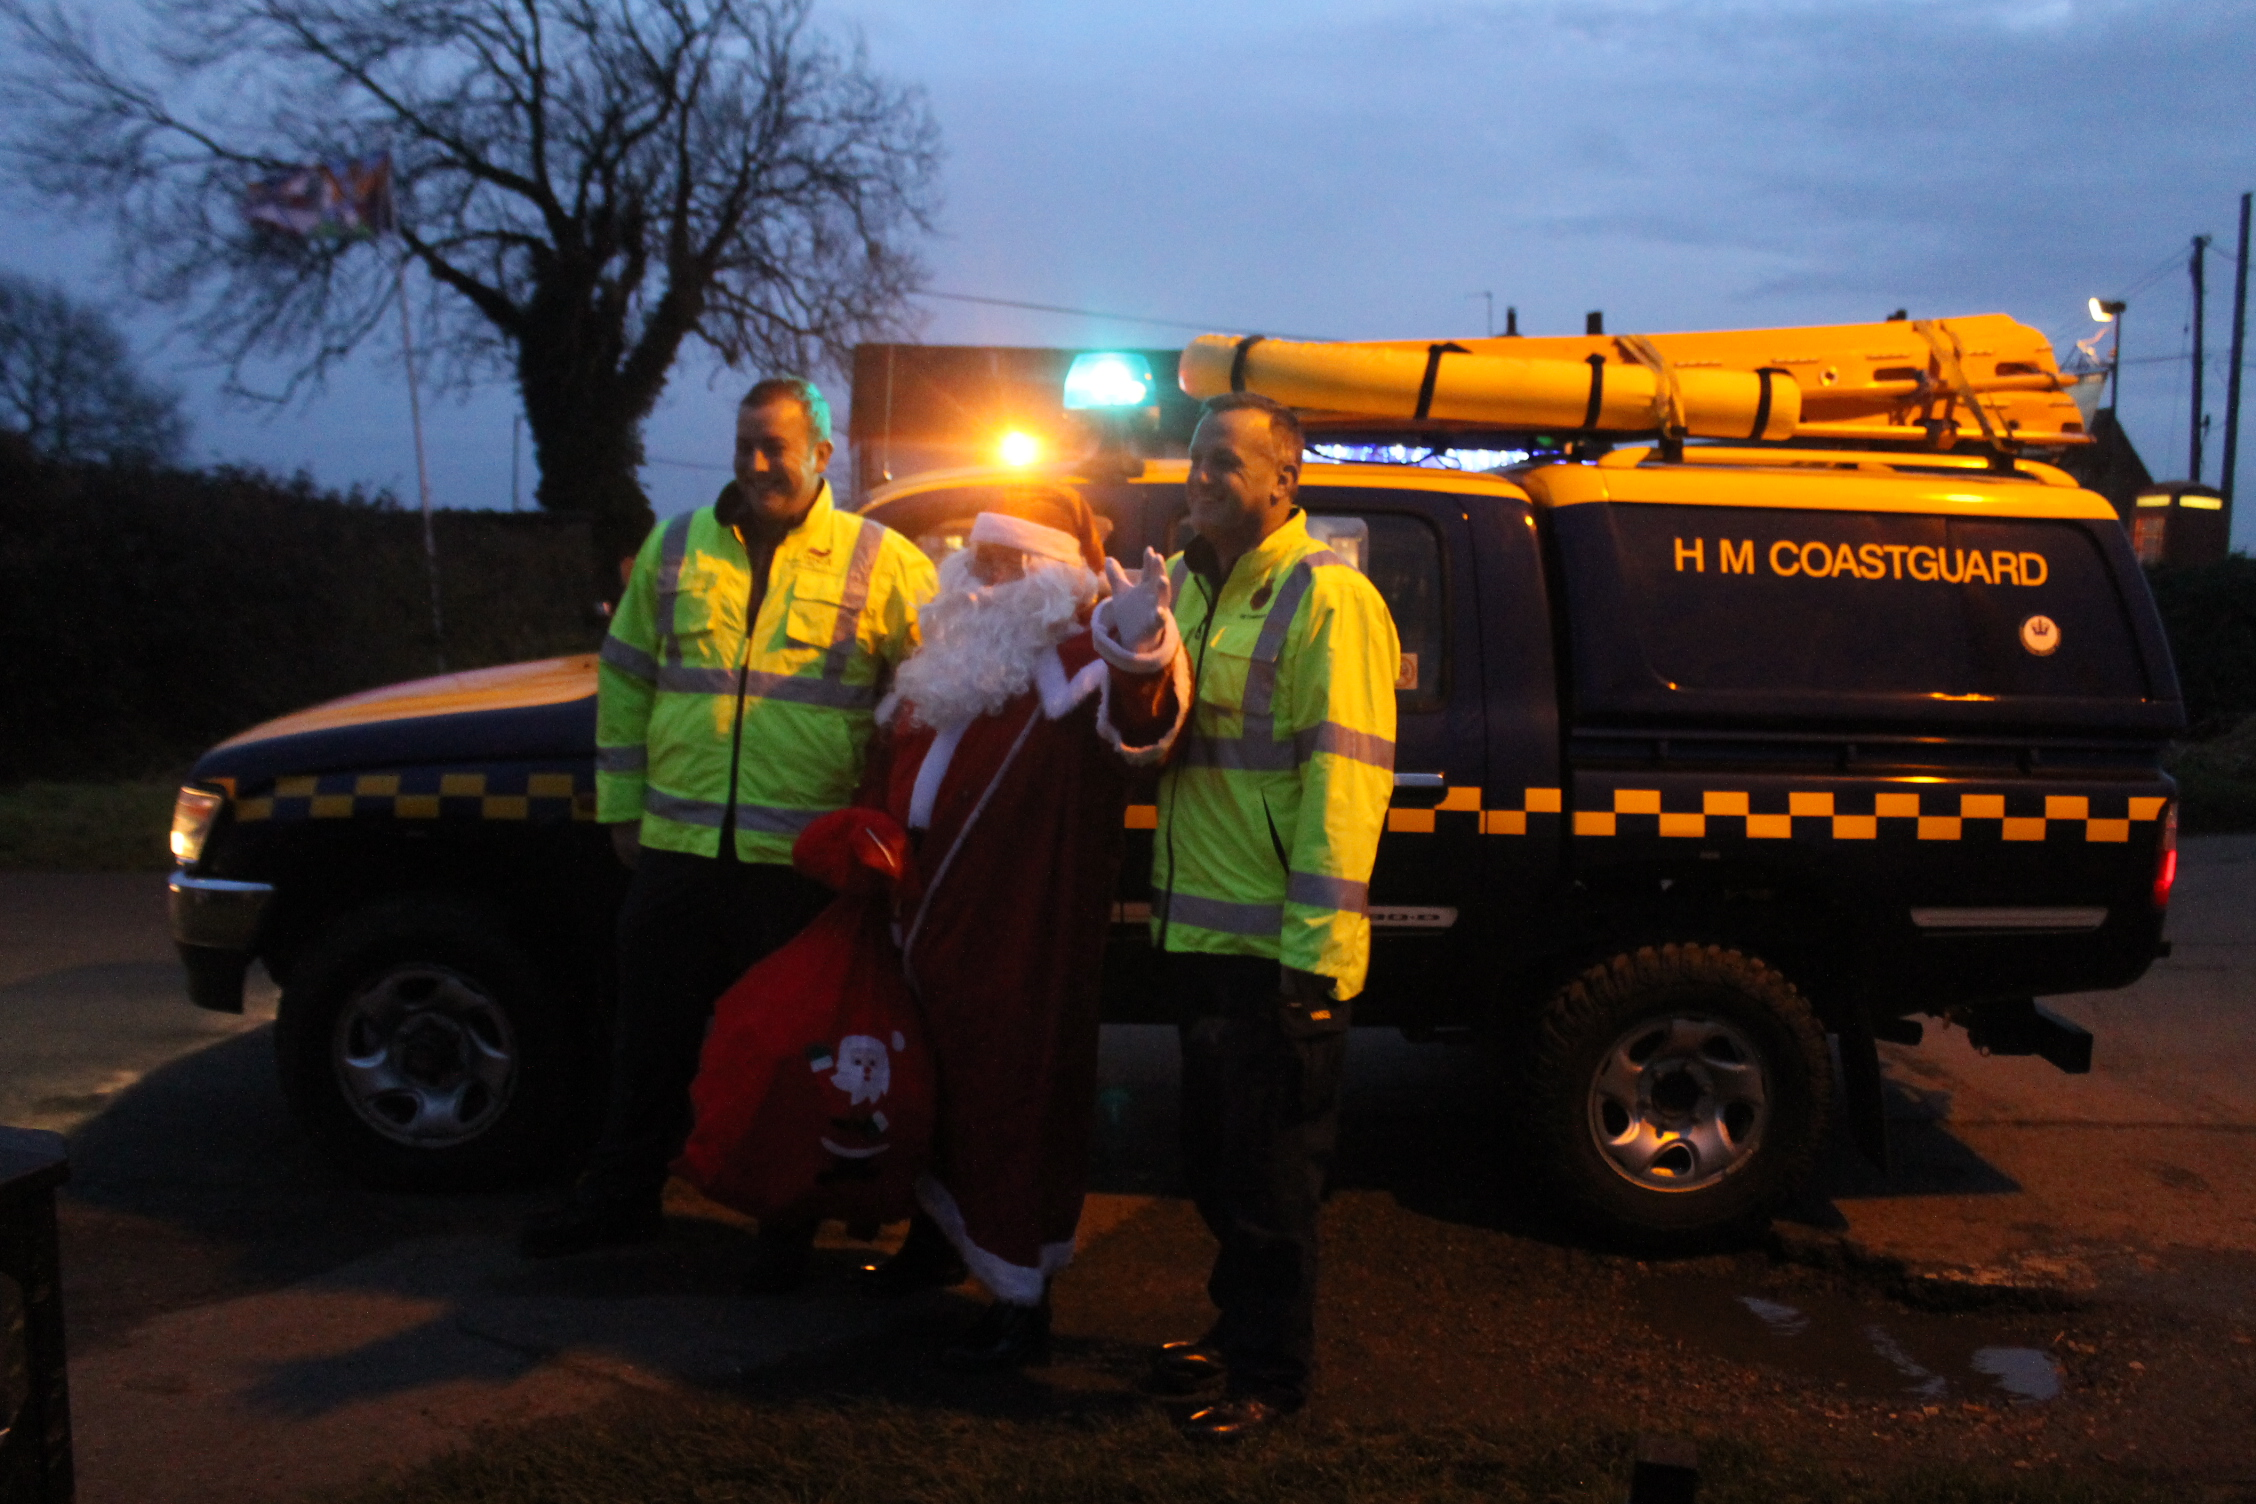 Local Coastguard Rescue Santa